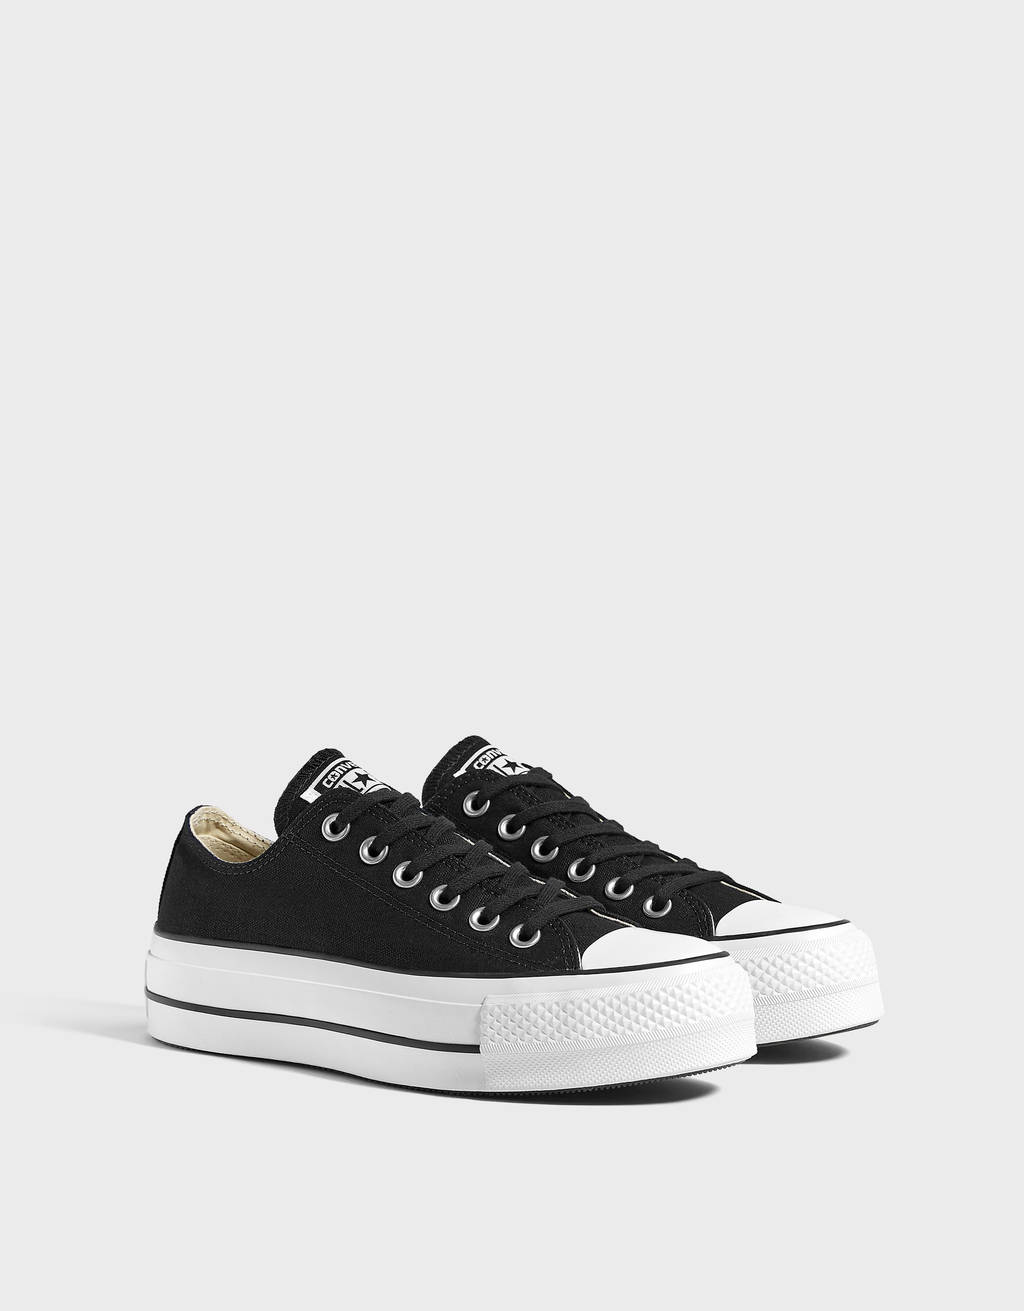 converse chuck taylor all star plataforma mujer